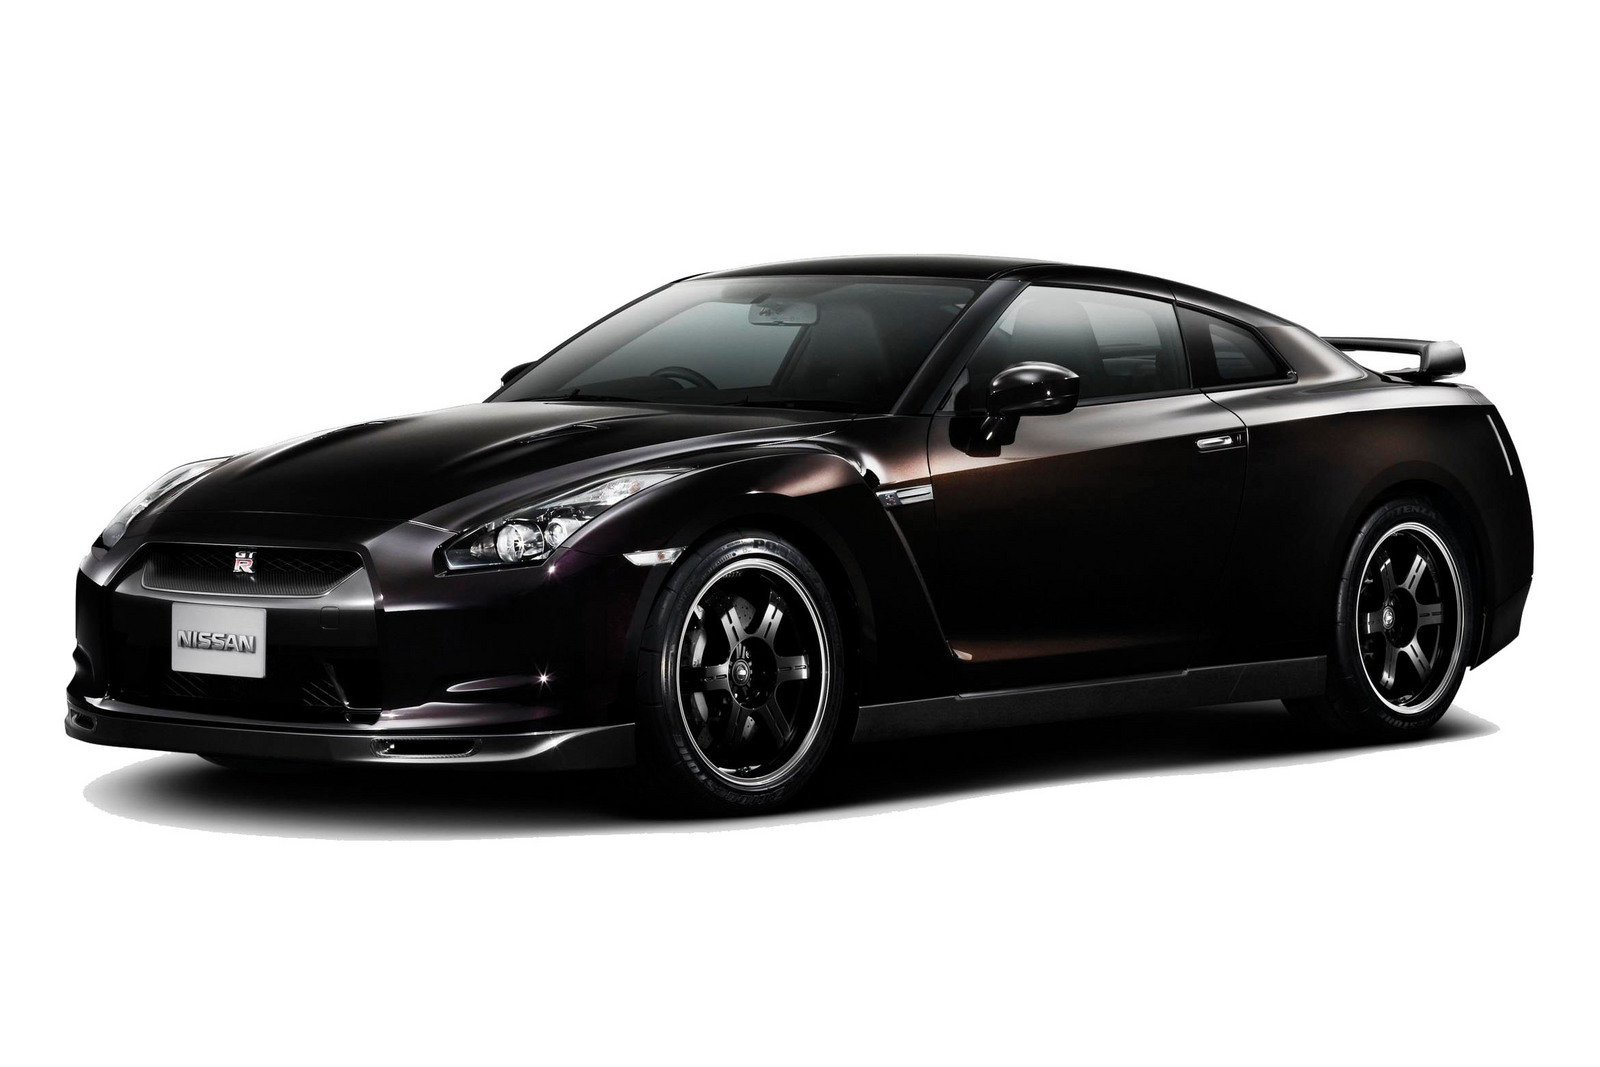 2010 nissan gt-r specv review - top speed